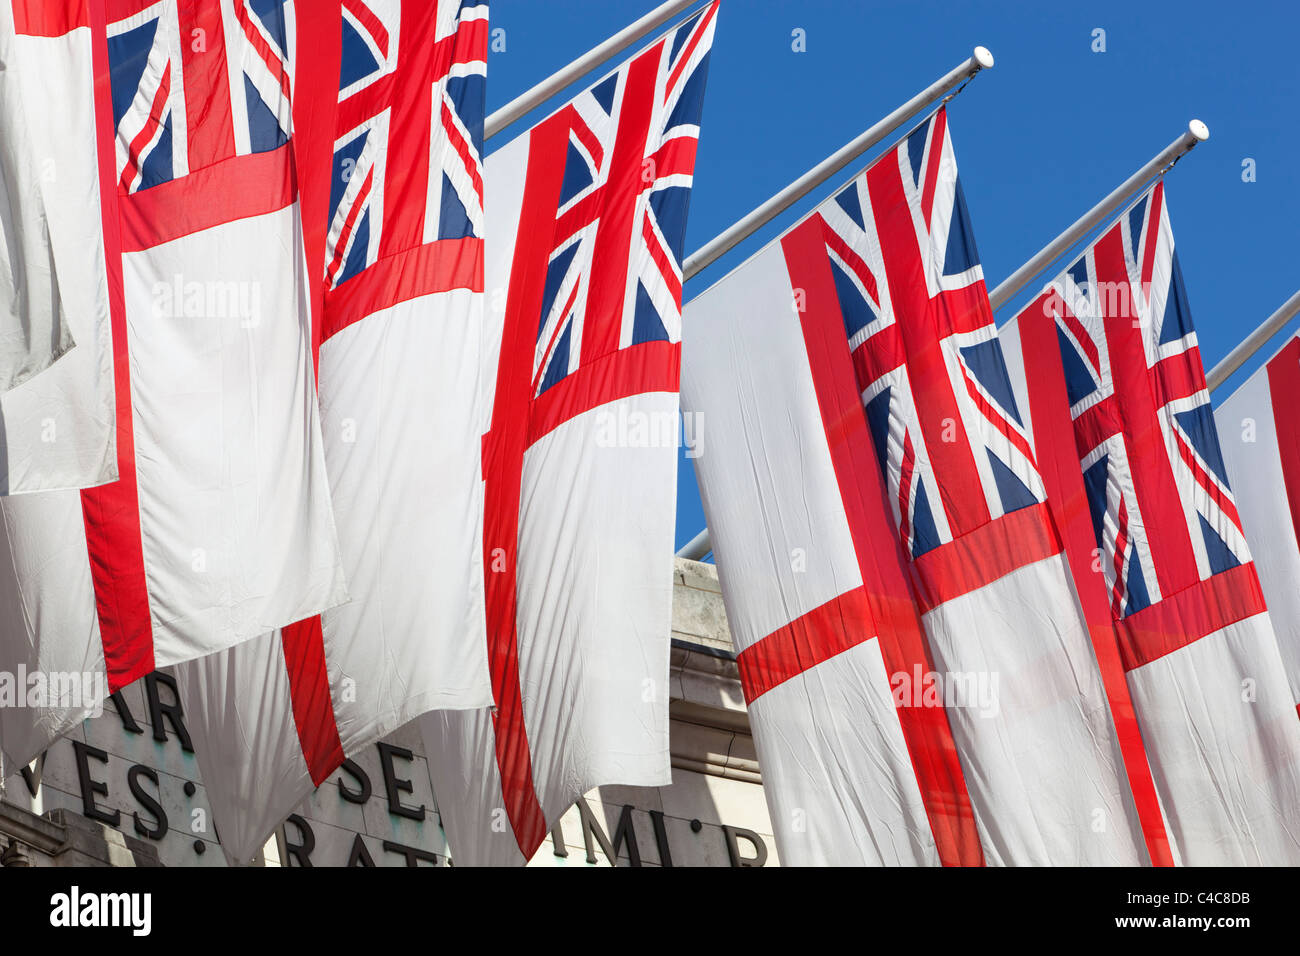 Royal Navy White Ensigns flying above Admiralty Arch along The Mall in London - Stock Image